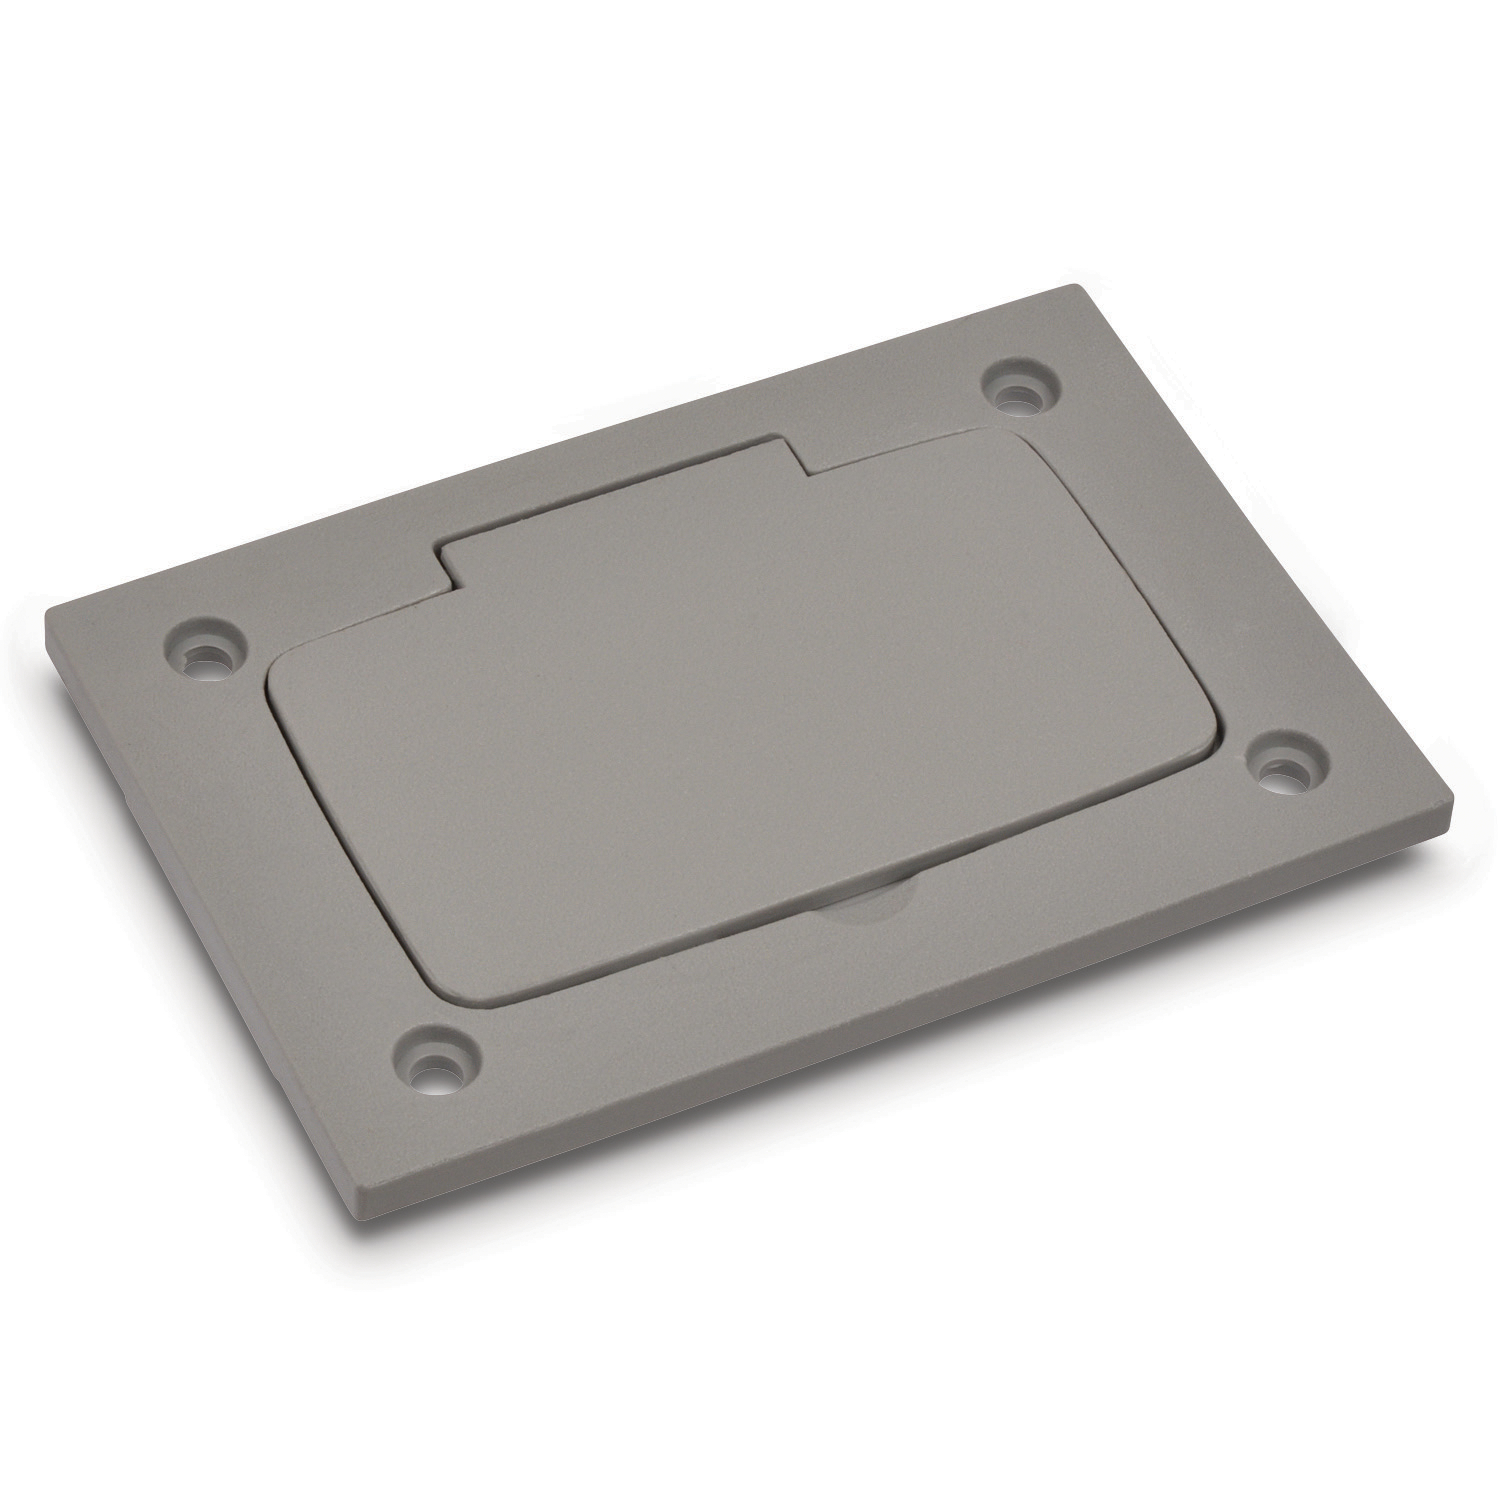 STL-CTY P64PURCGRY PLASTICBOX/COVER